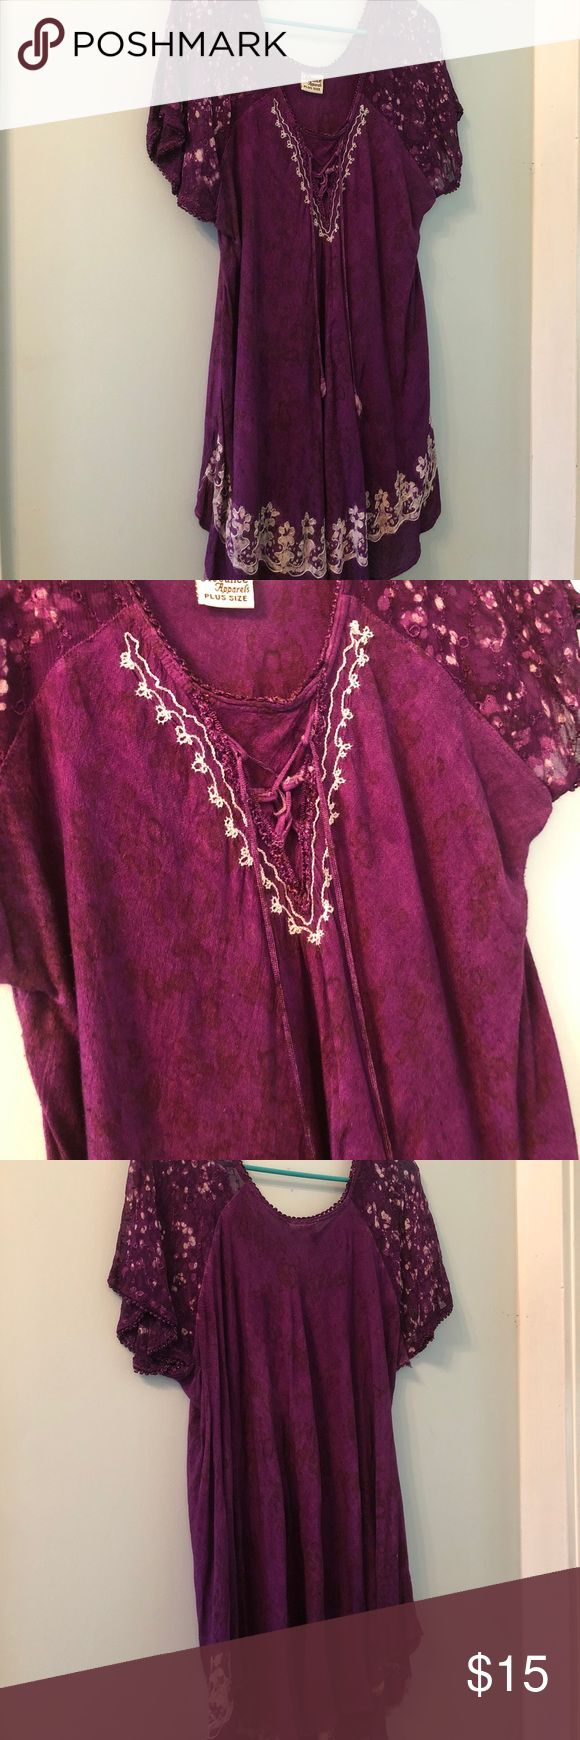 Advance Apparels Purple short sleeve blouse Beautiful deep purple short sleeve top with lace up detailing at front bodice. 100% cotton. Some unraveling at hems. Size 22. Advance Apparels Tops Blouses